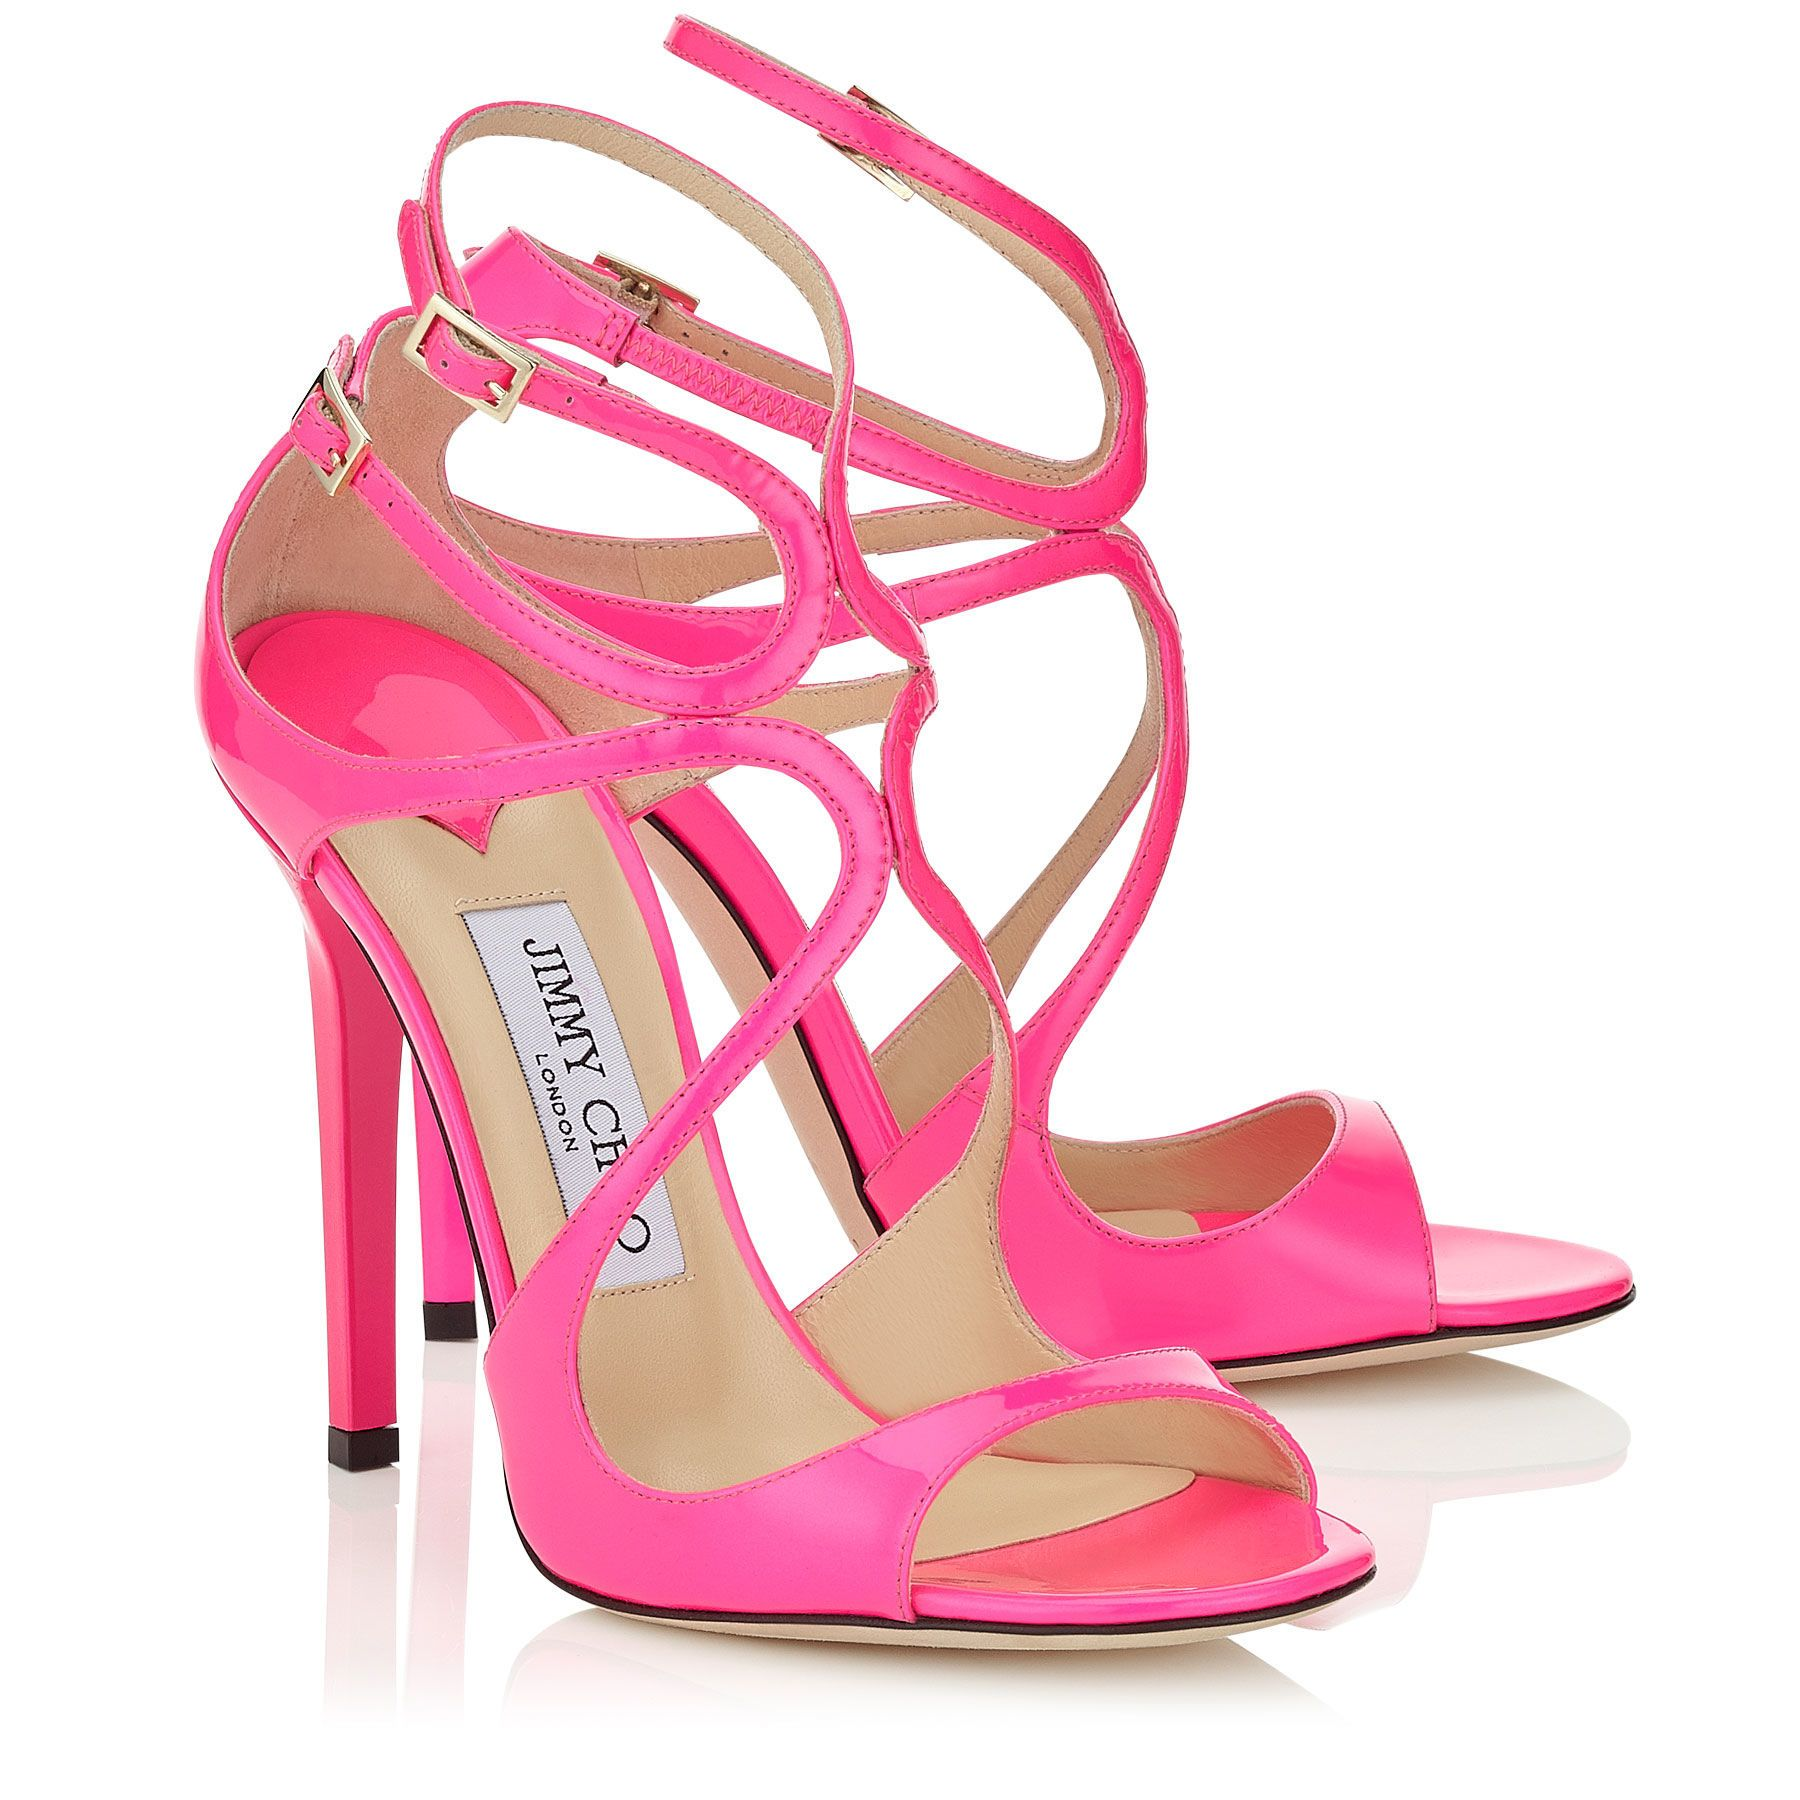 Jimmy Choo AUTH Raspberry Neon Patent Strappy Sandals high heel size 6